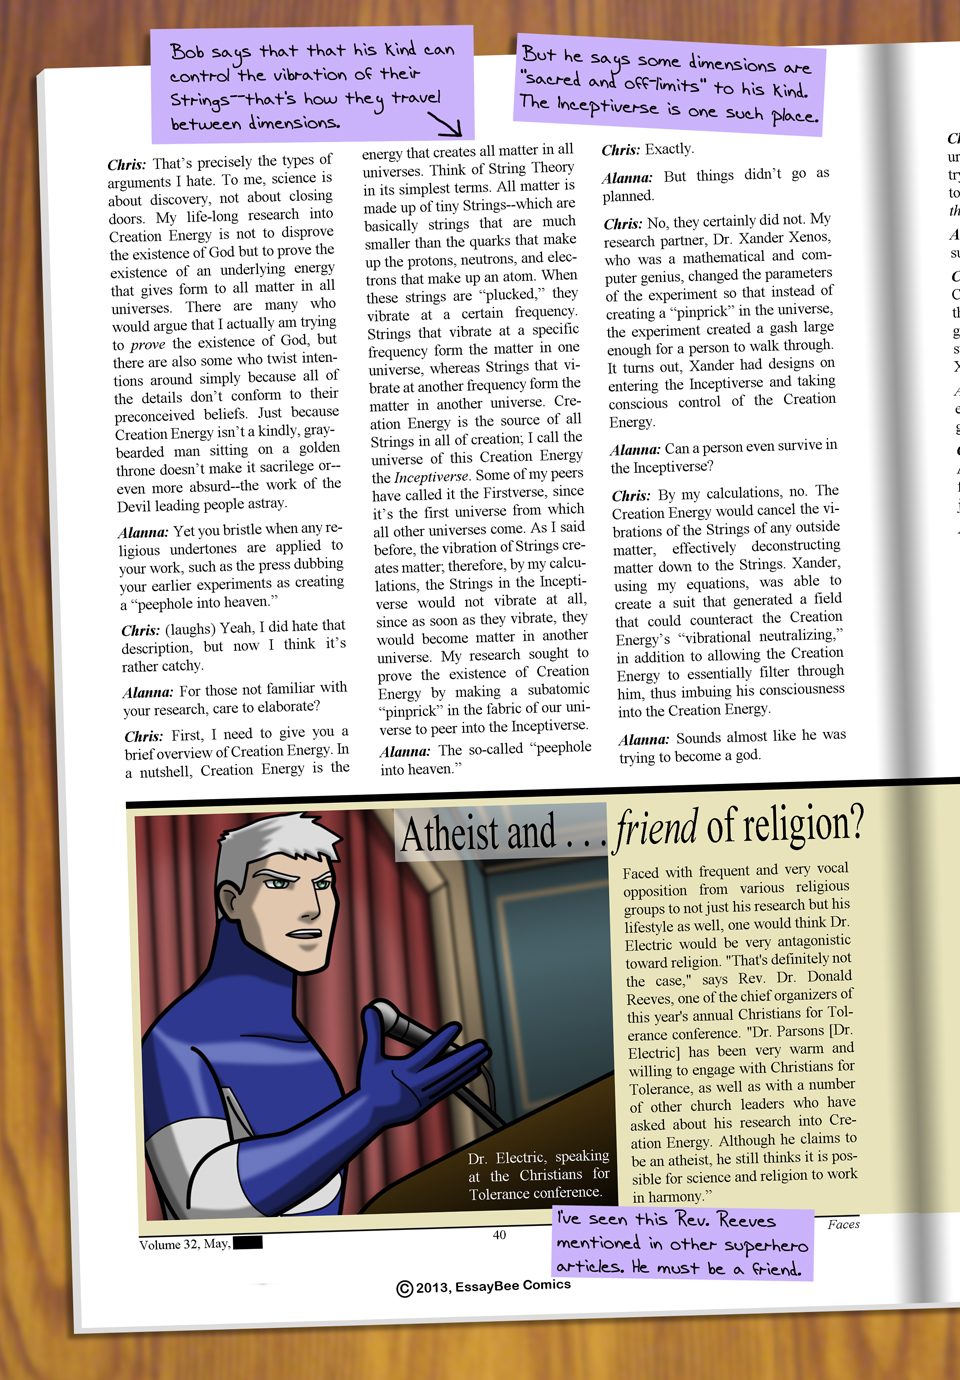 Interleude--Faces Magazine Interview Page 03